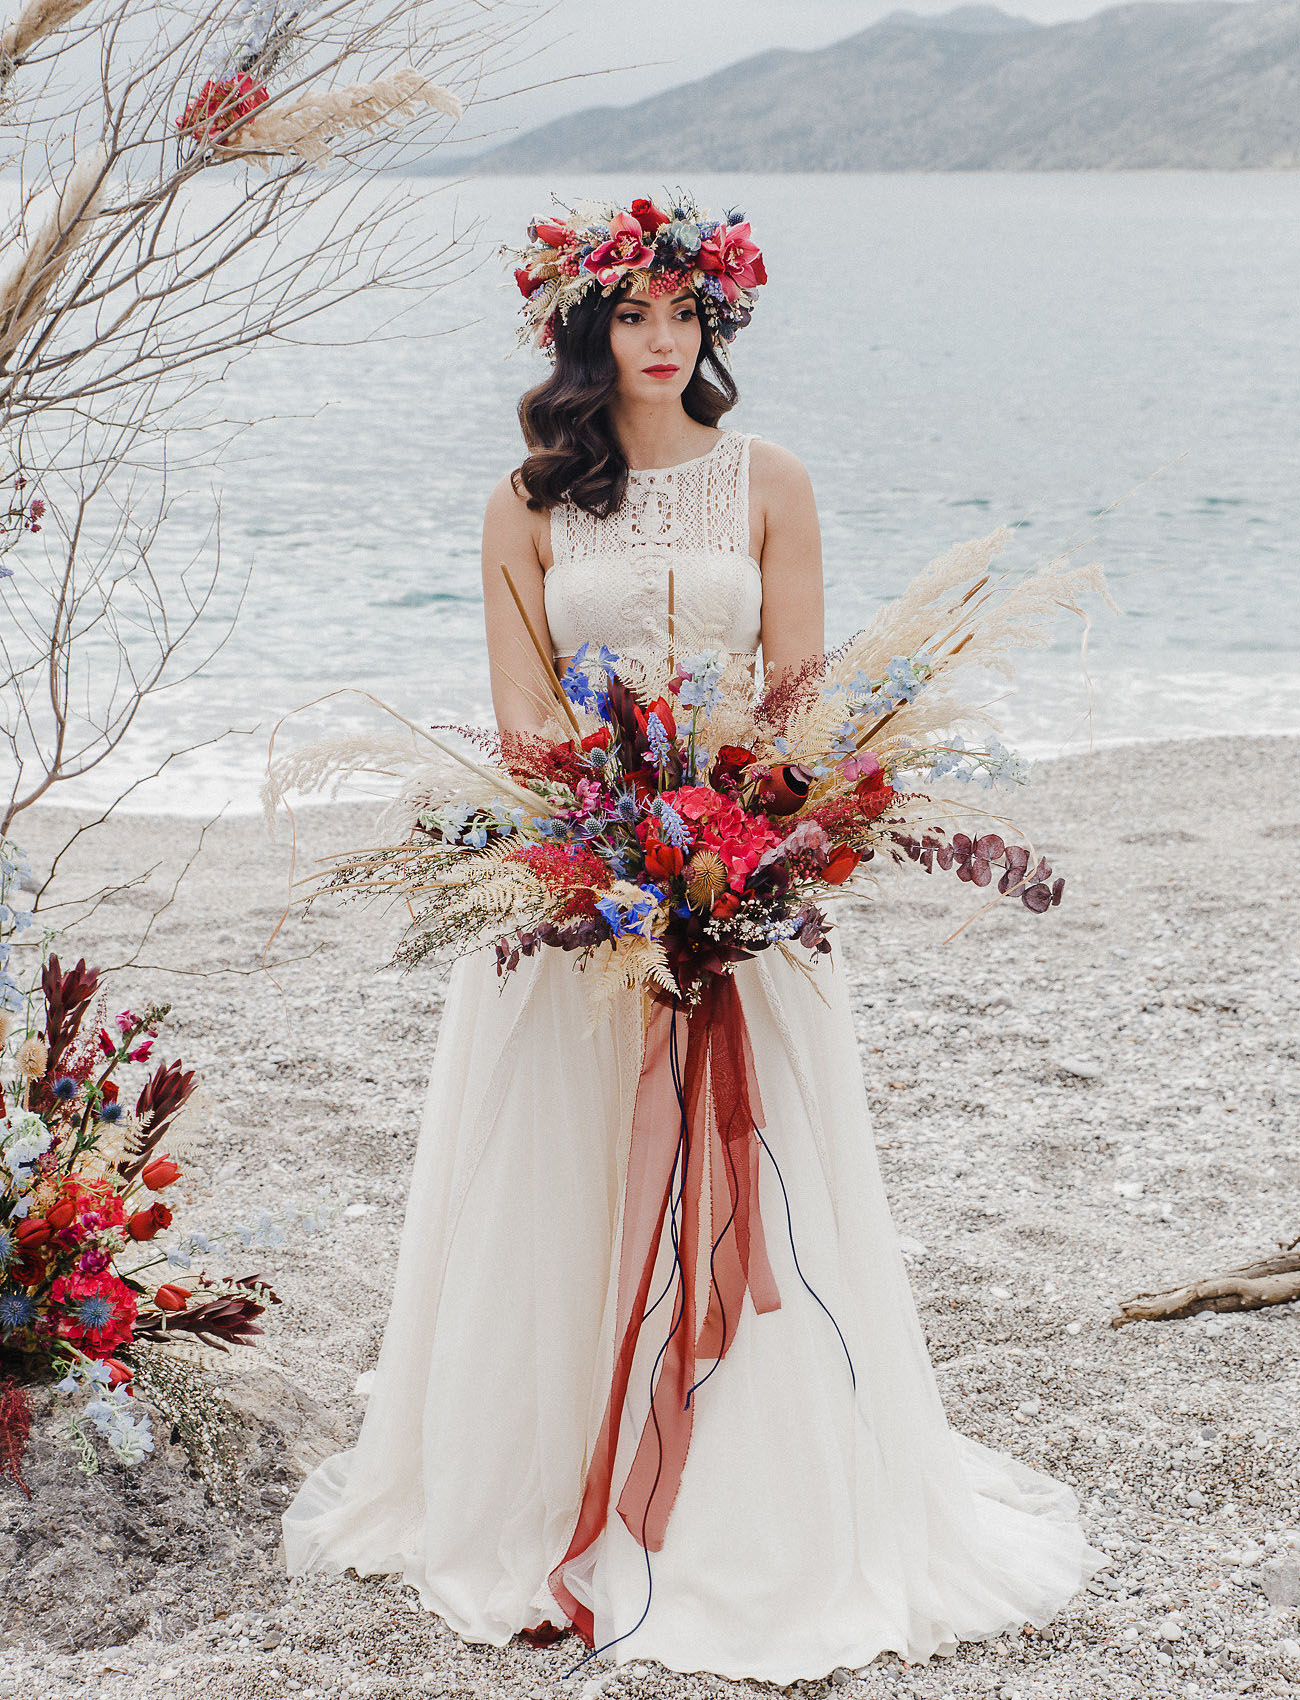 She finished off her look with a bright floral crown that matched the bouquet